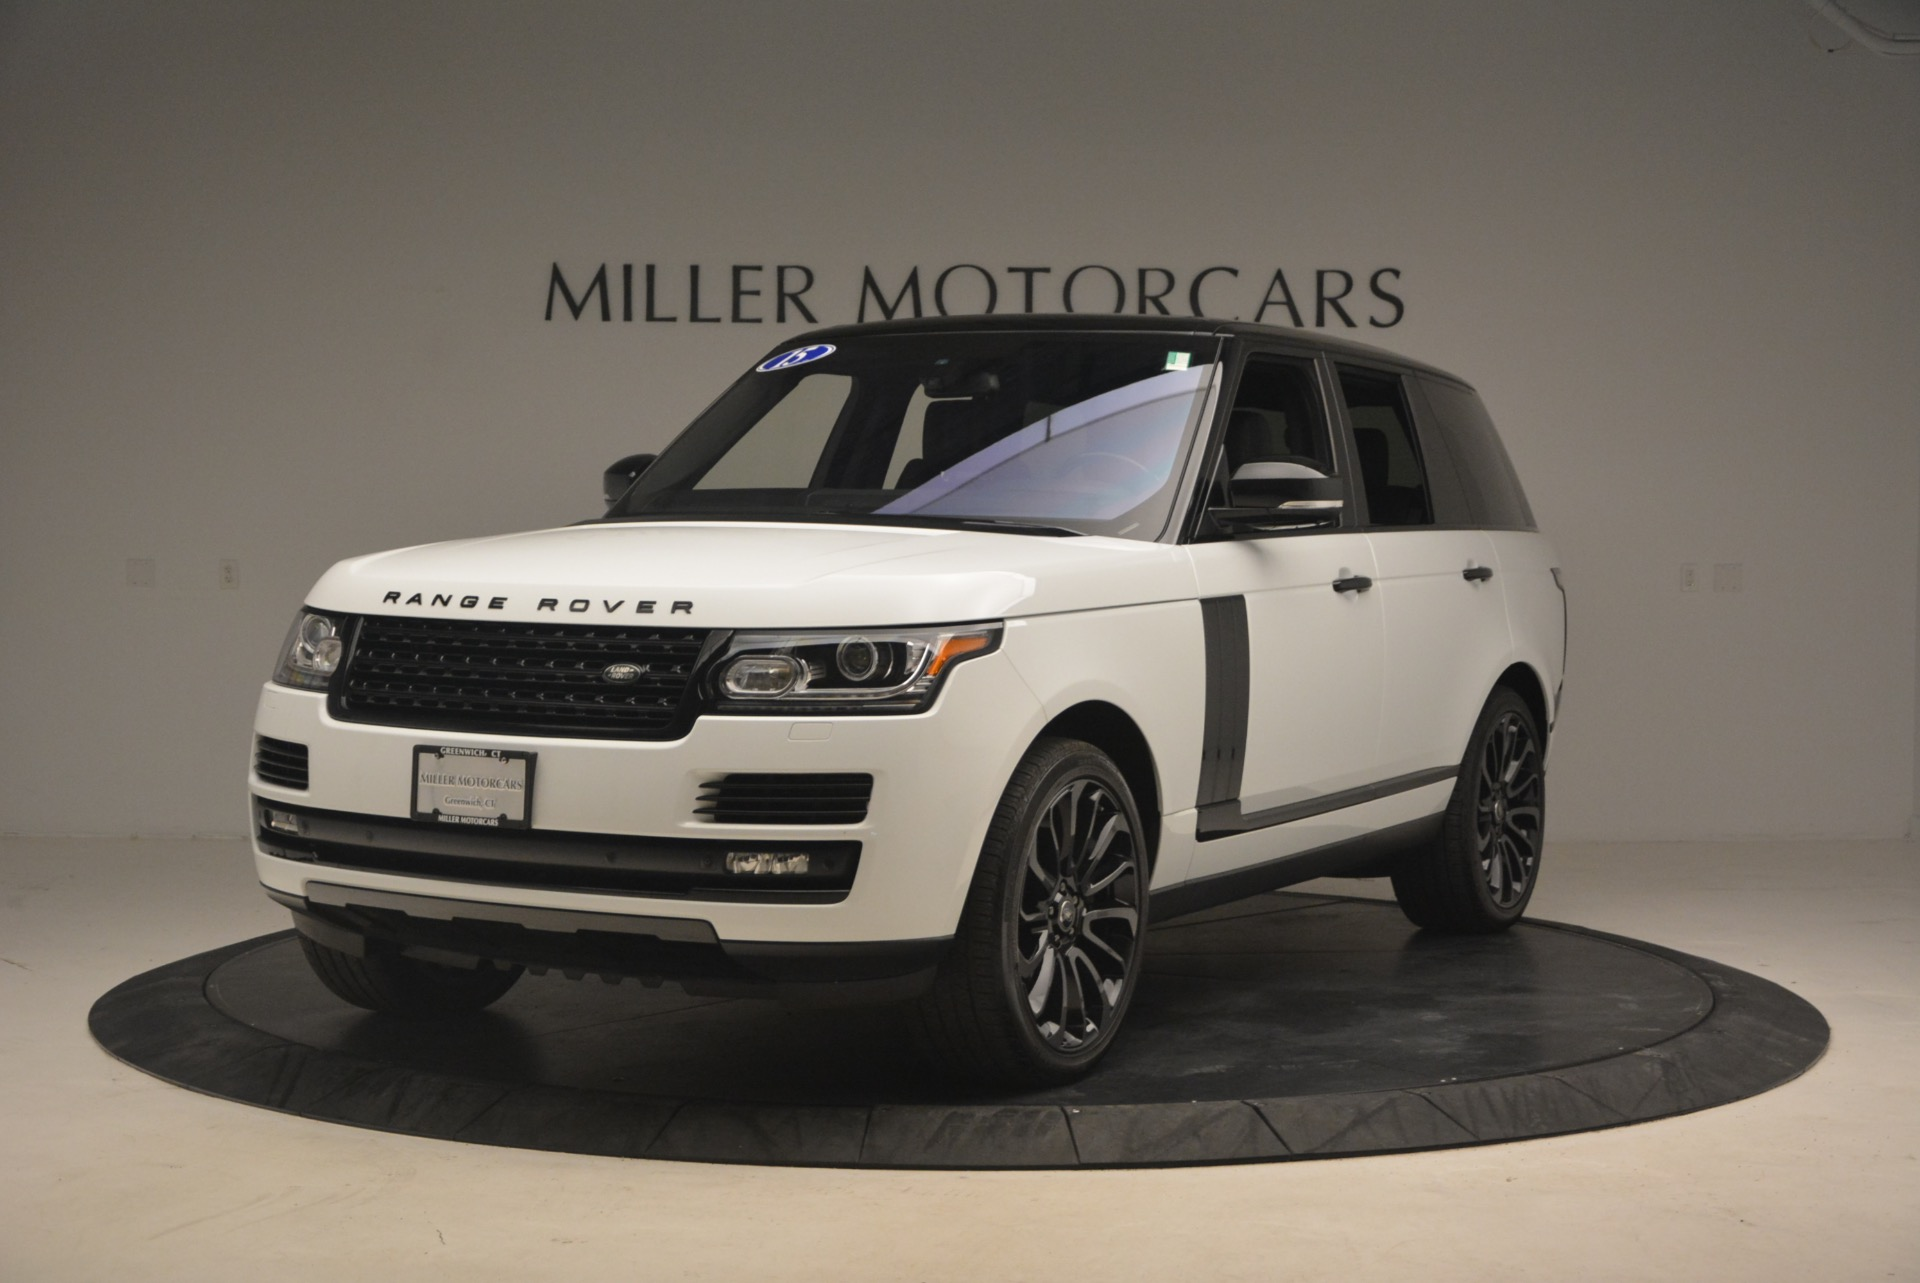 Used 2015 Land Rover Range Rover Supercharged for sale Sold at Bentley Greenwich in Greenwich CT 06830 1